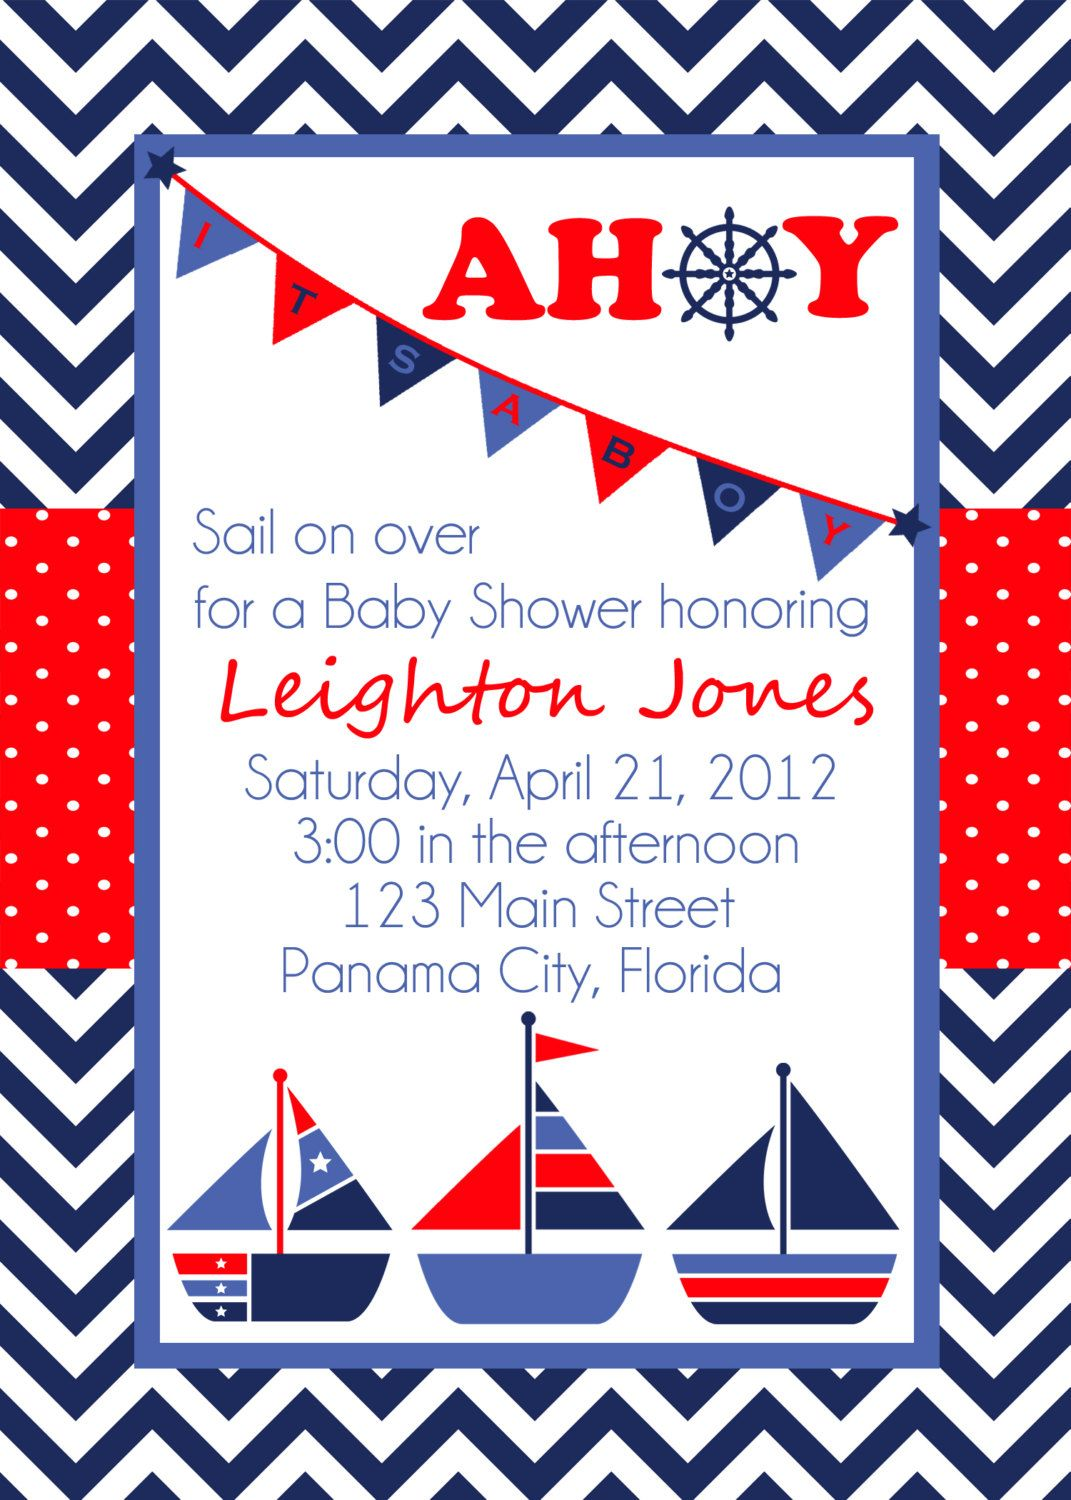 ahoy sailboat nautical theme shower invitation 1 50 via etsy